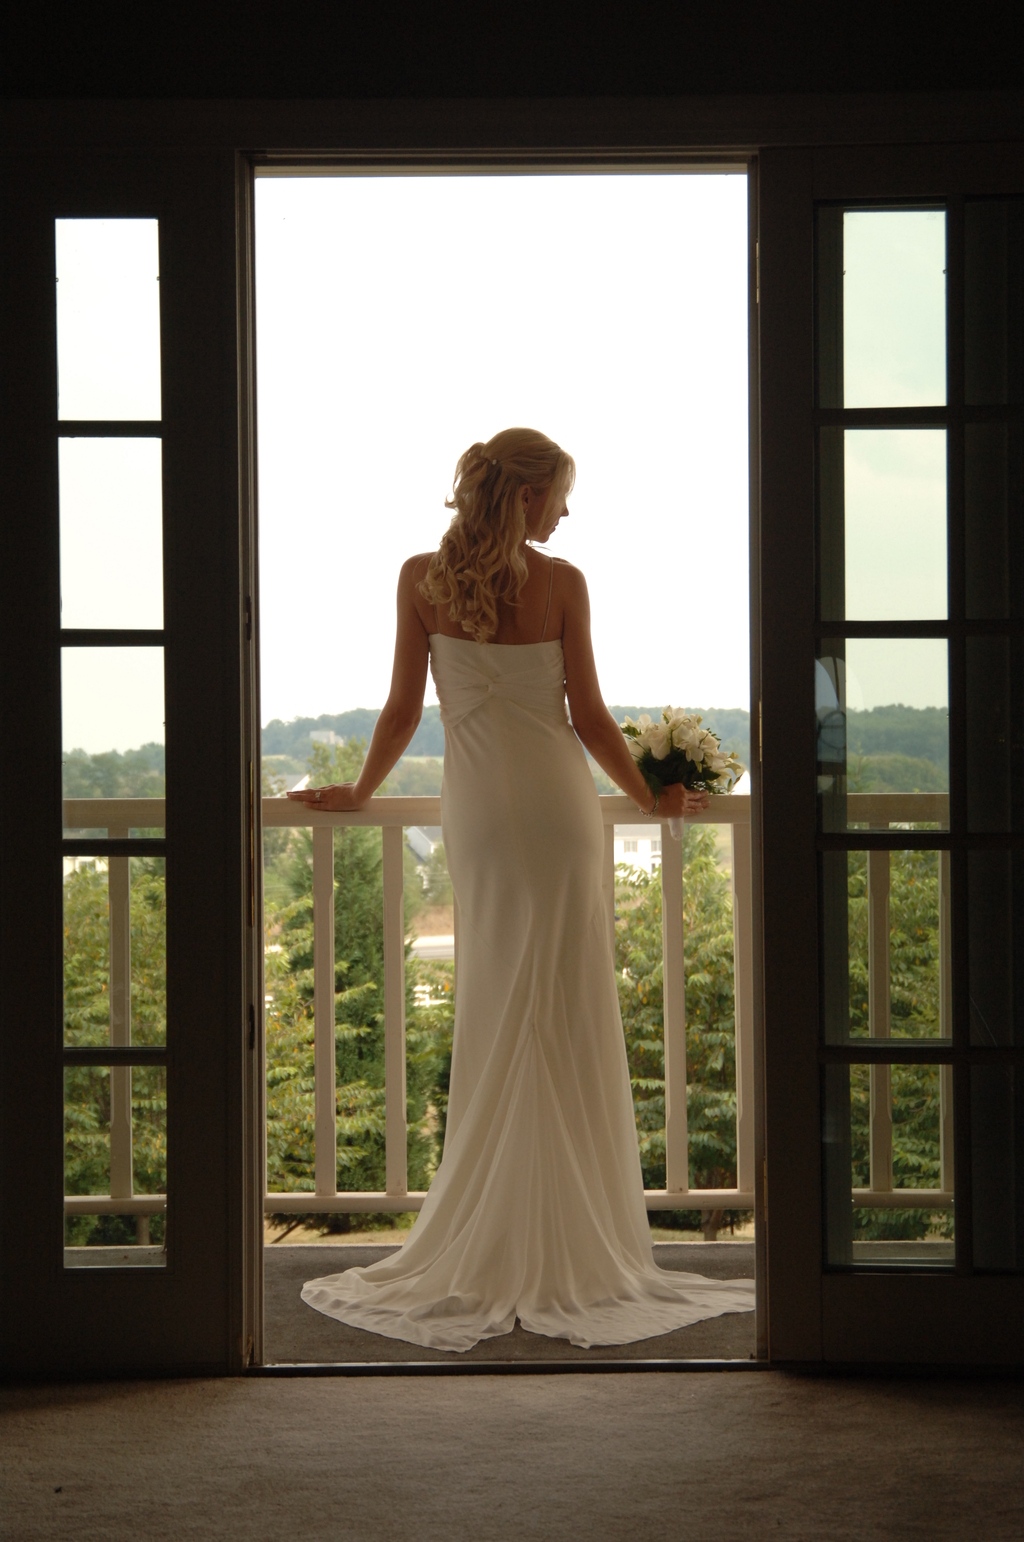 Bride_20on_20top_20balcony.original.full